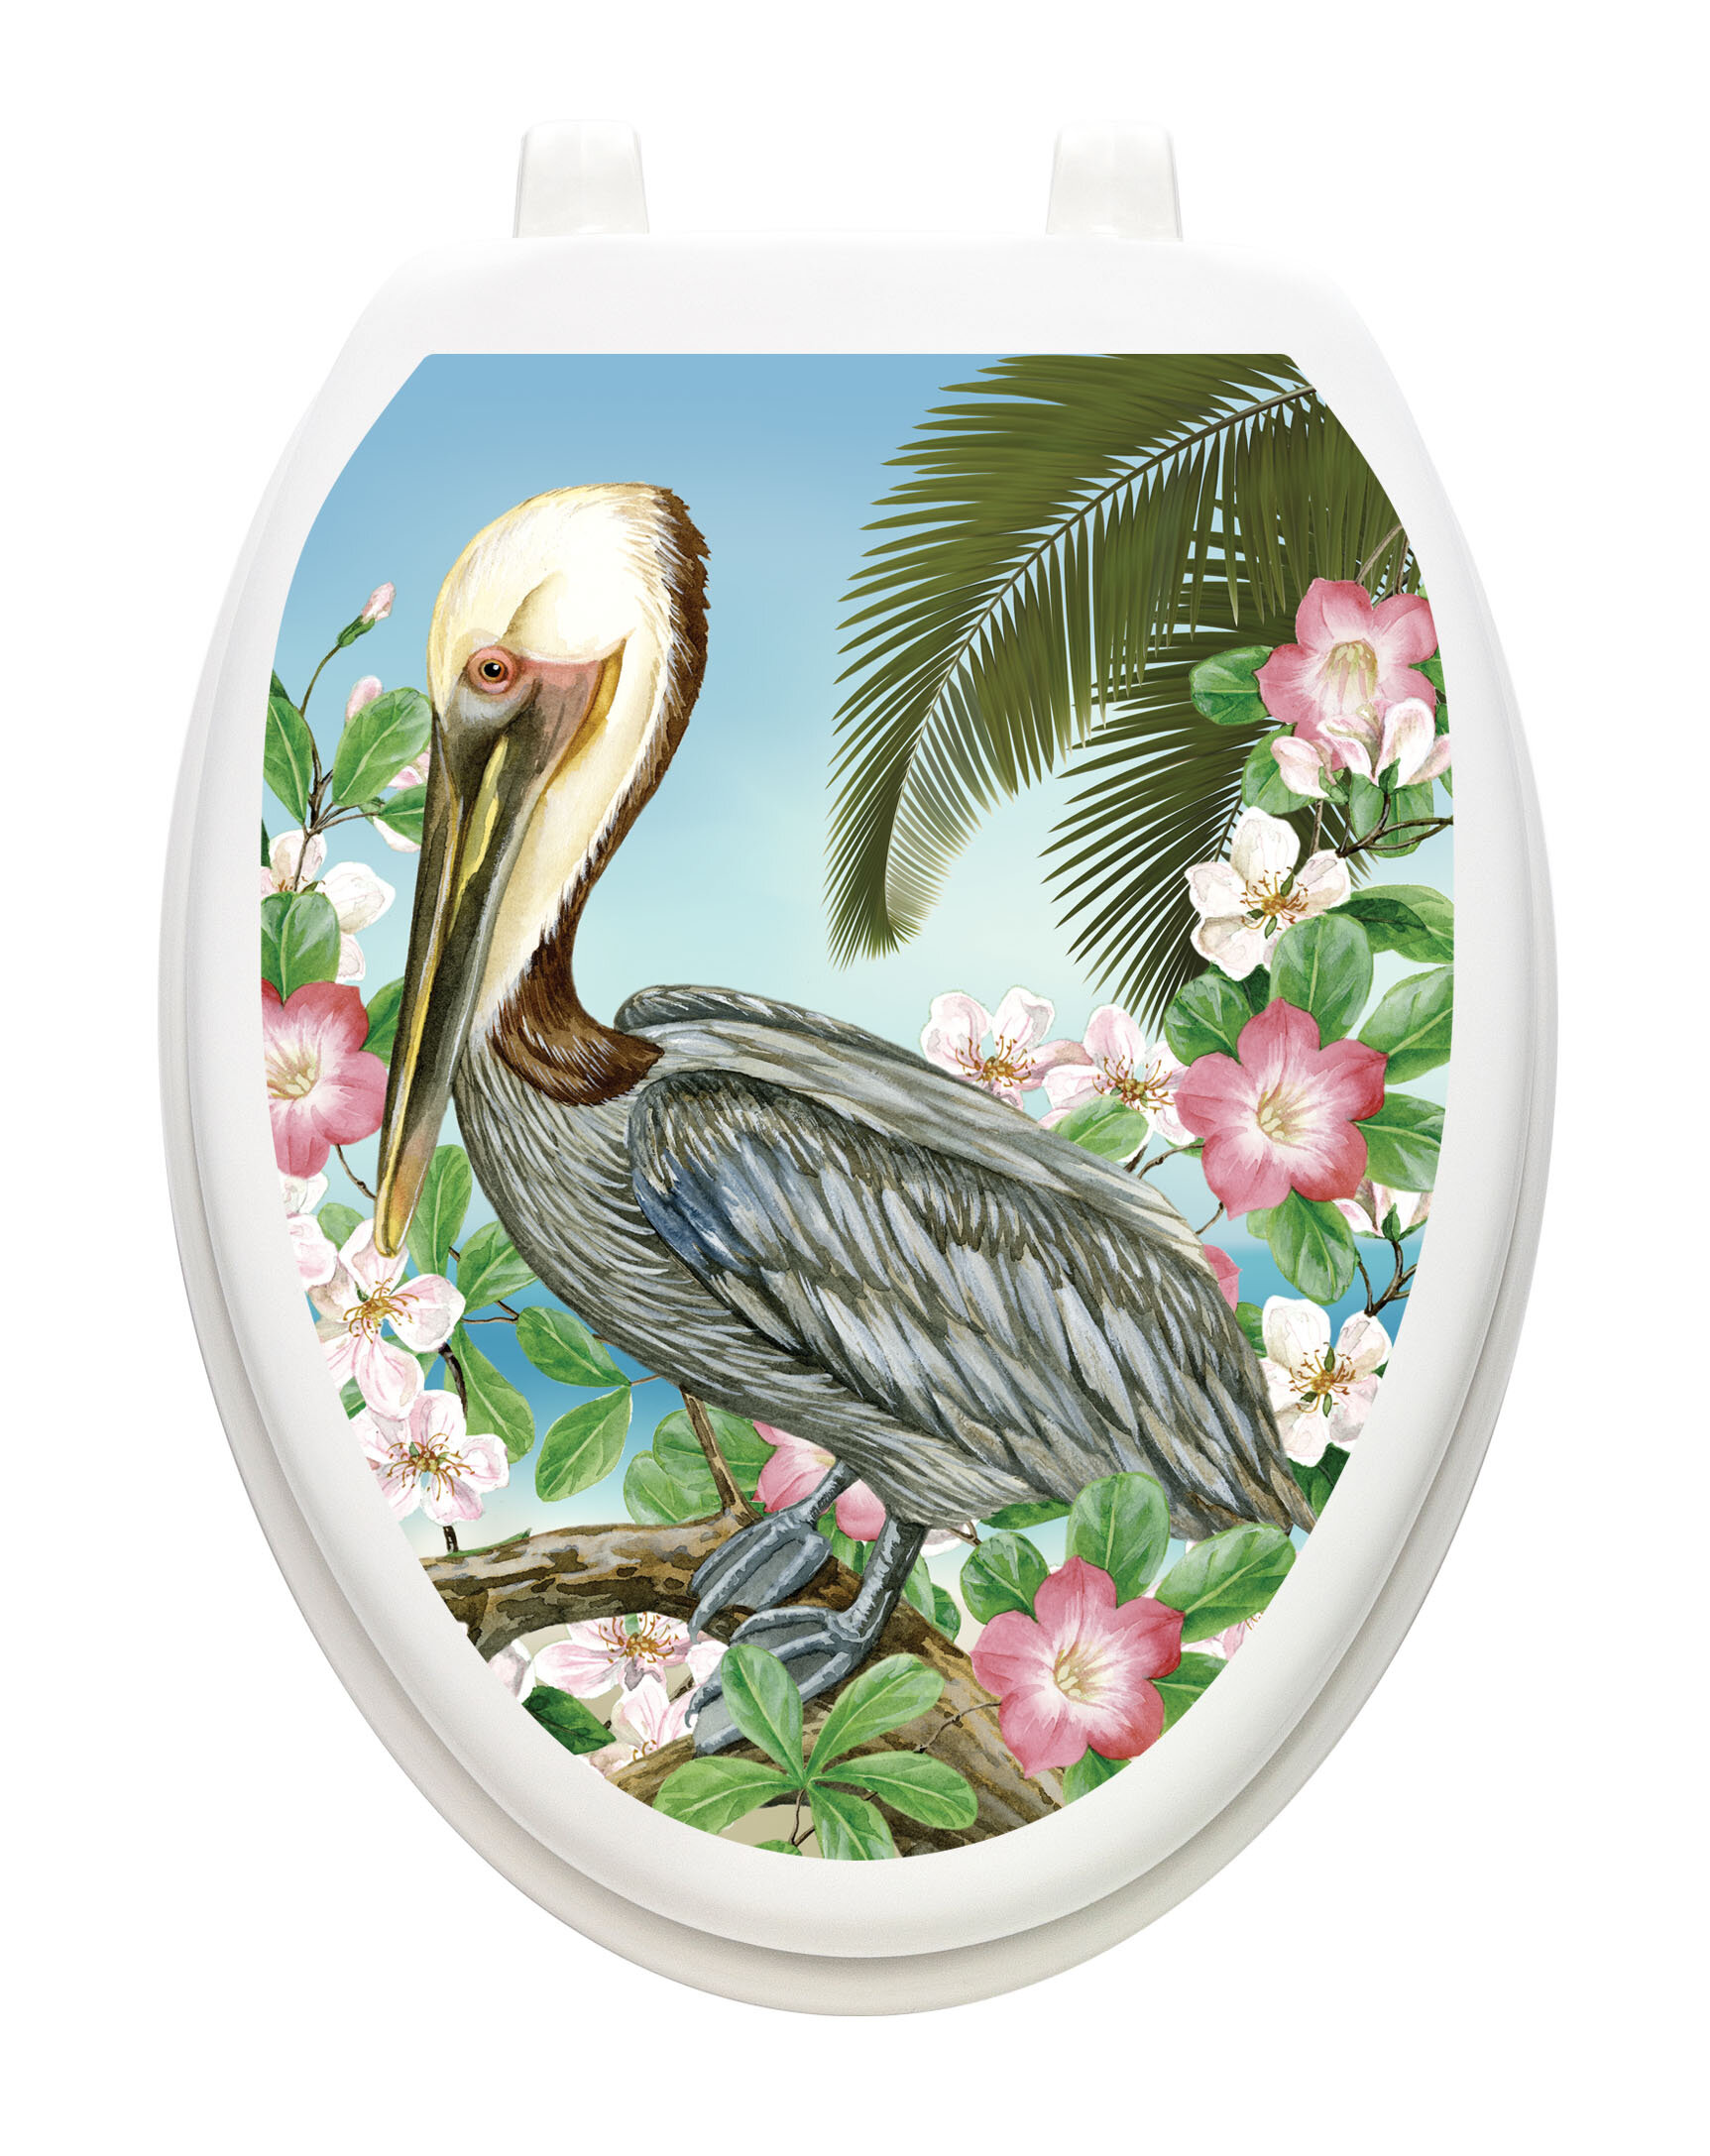 Groovy Pelican Toilet Seat Decal Creativecarmelina Interior Chair Design Creativecarmelinacom